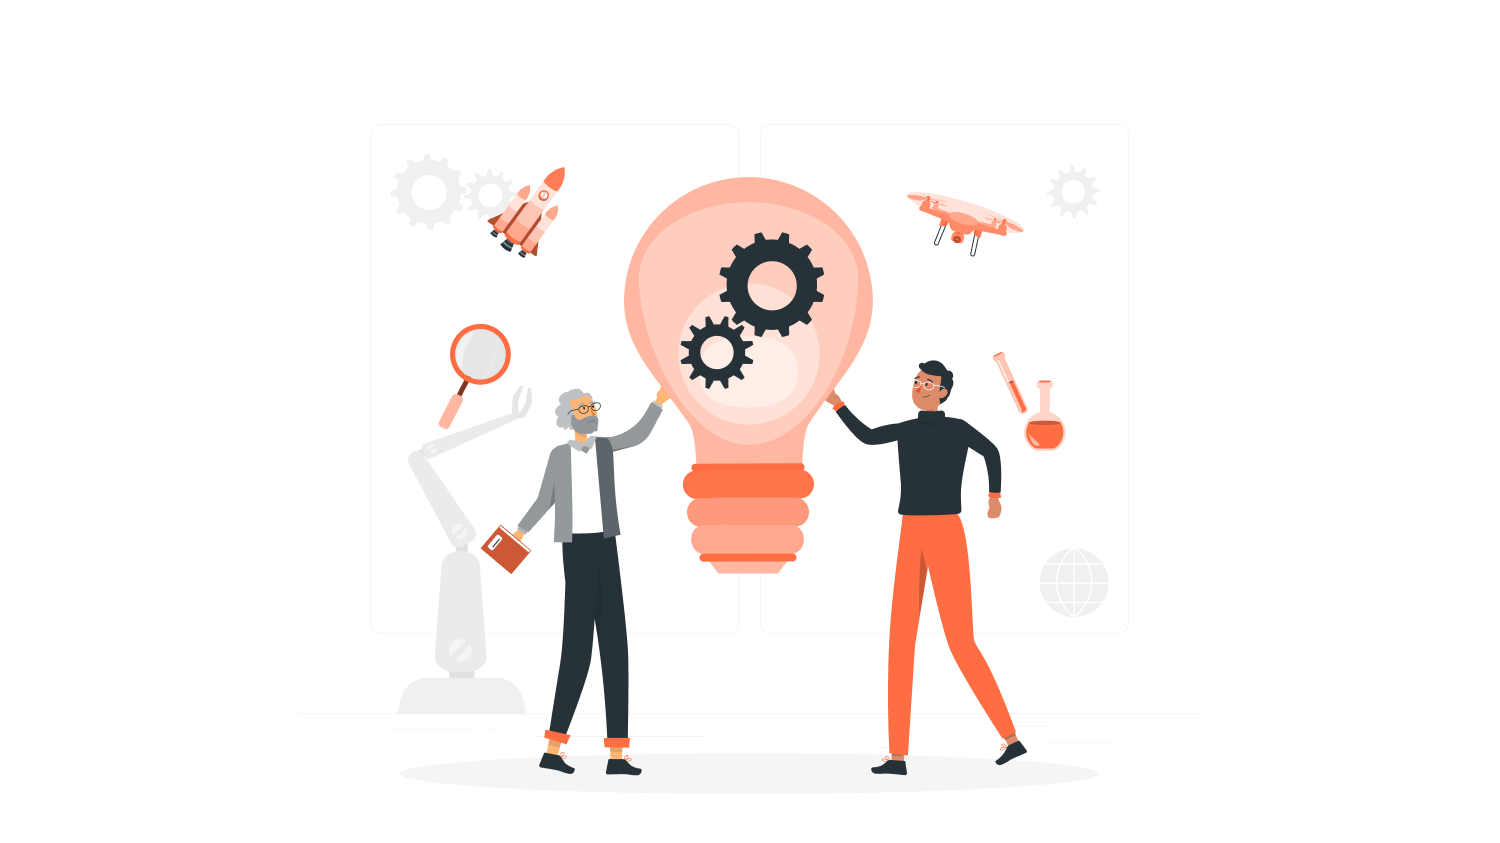 Top 10 Tips To Turn An Invention Idea Into a Profitable Product